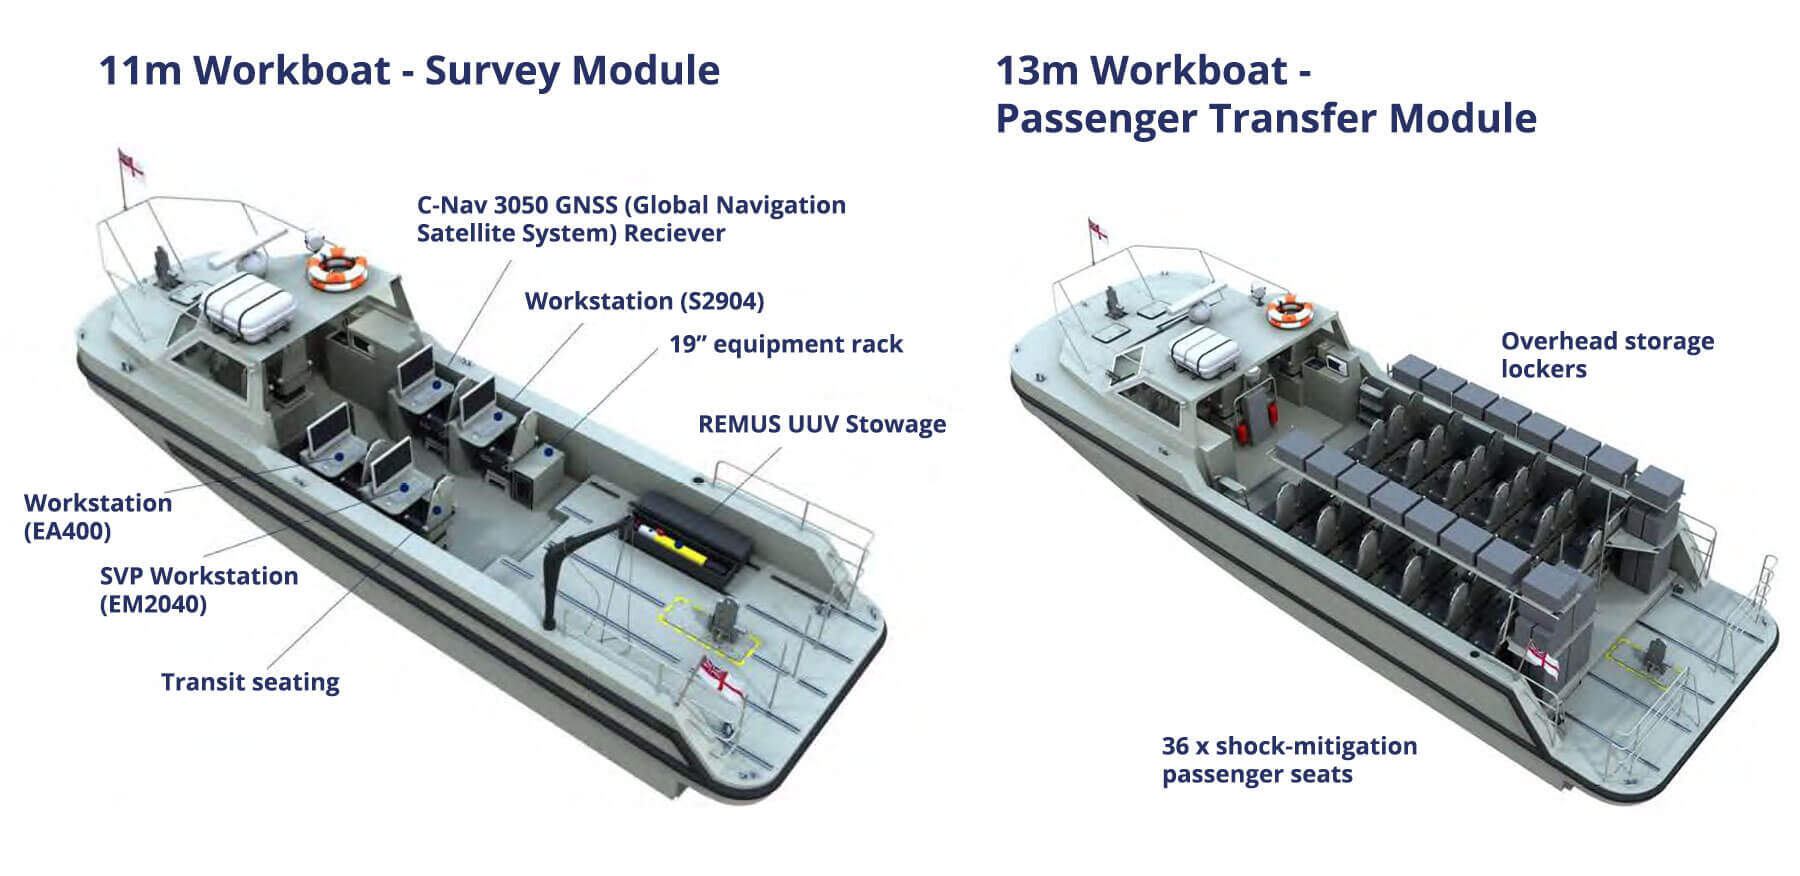 Survey and Passenger Transfer modules